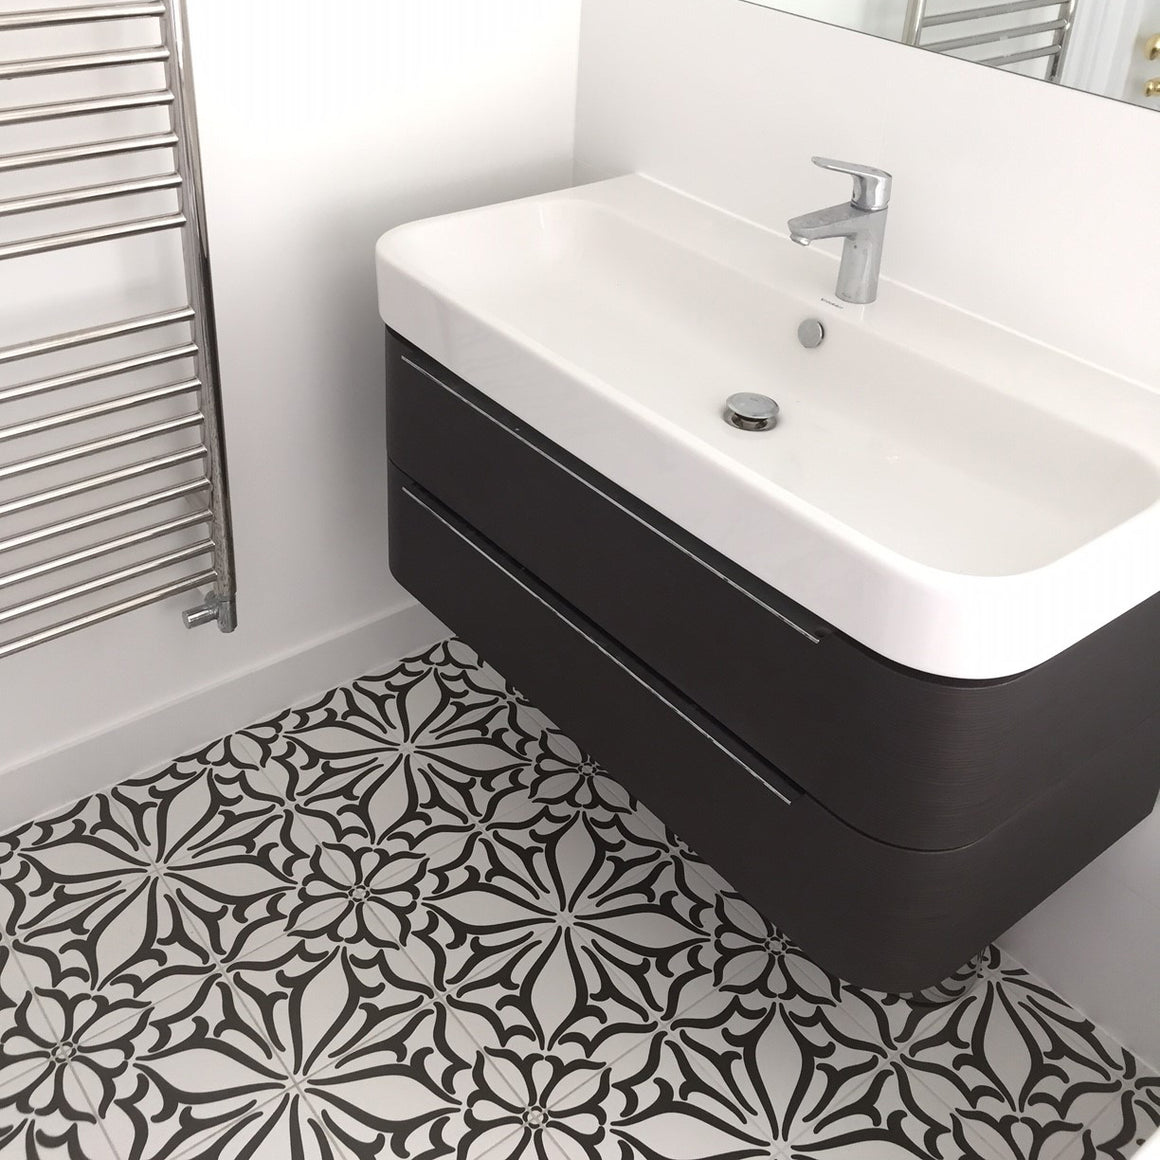 Pistil Black and White timeless matte porcelain decorative pattern tile for residential and commercial bathroom and kitchen floor and wall imported from Portugal, Kerion Décor Classic C Noir available from TilesInspired Canada's Online Tile Store delivering across Ontario and Quebec, including Toronto, Montreal, Ottawa, London, Windsor, Kitchener, Muskoka, Barrie, Kingston, Hamilton, and Niagara tile idea